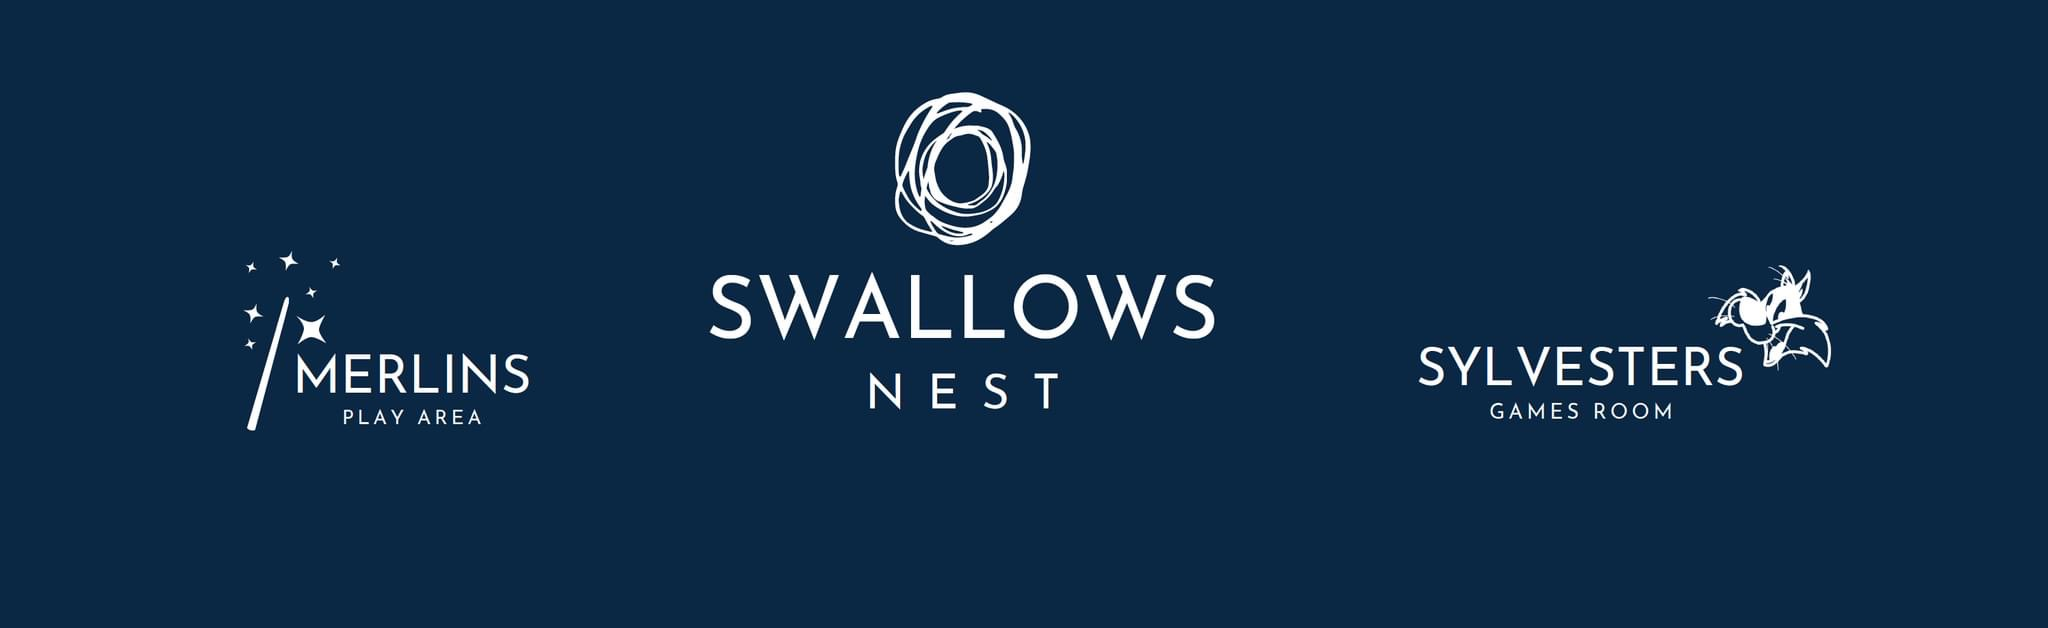 Swallows Nest Clubhouse